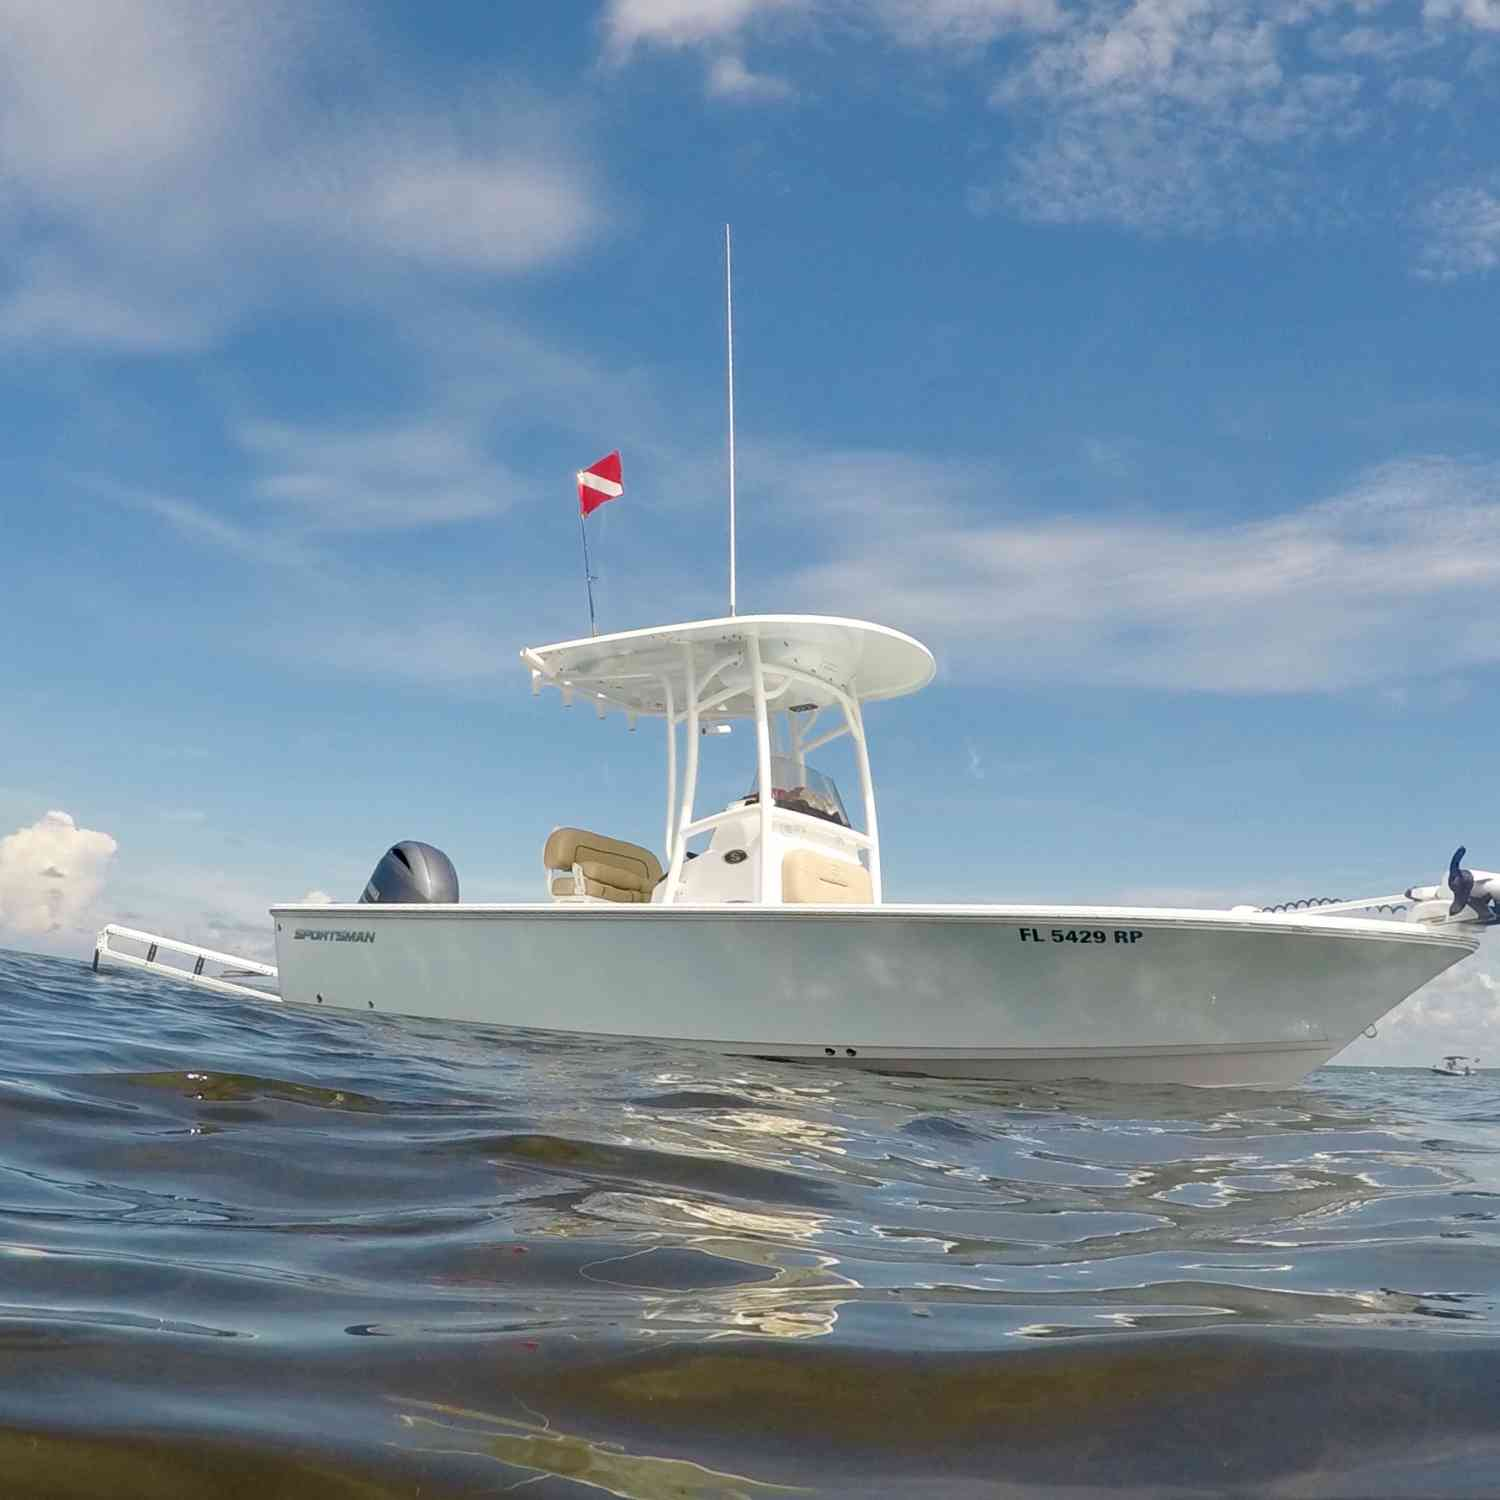 Title: Scalloping in the Gulf - On board their Sportsman Masters 227 Bay Boat - Location: Steinhatchee, FL. Participating in the Photo Contest #SportsmanJuly2018